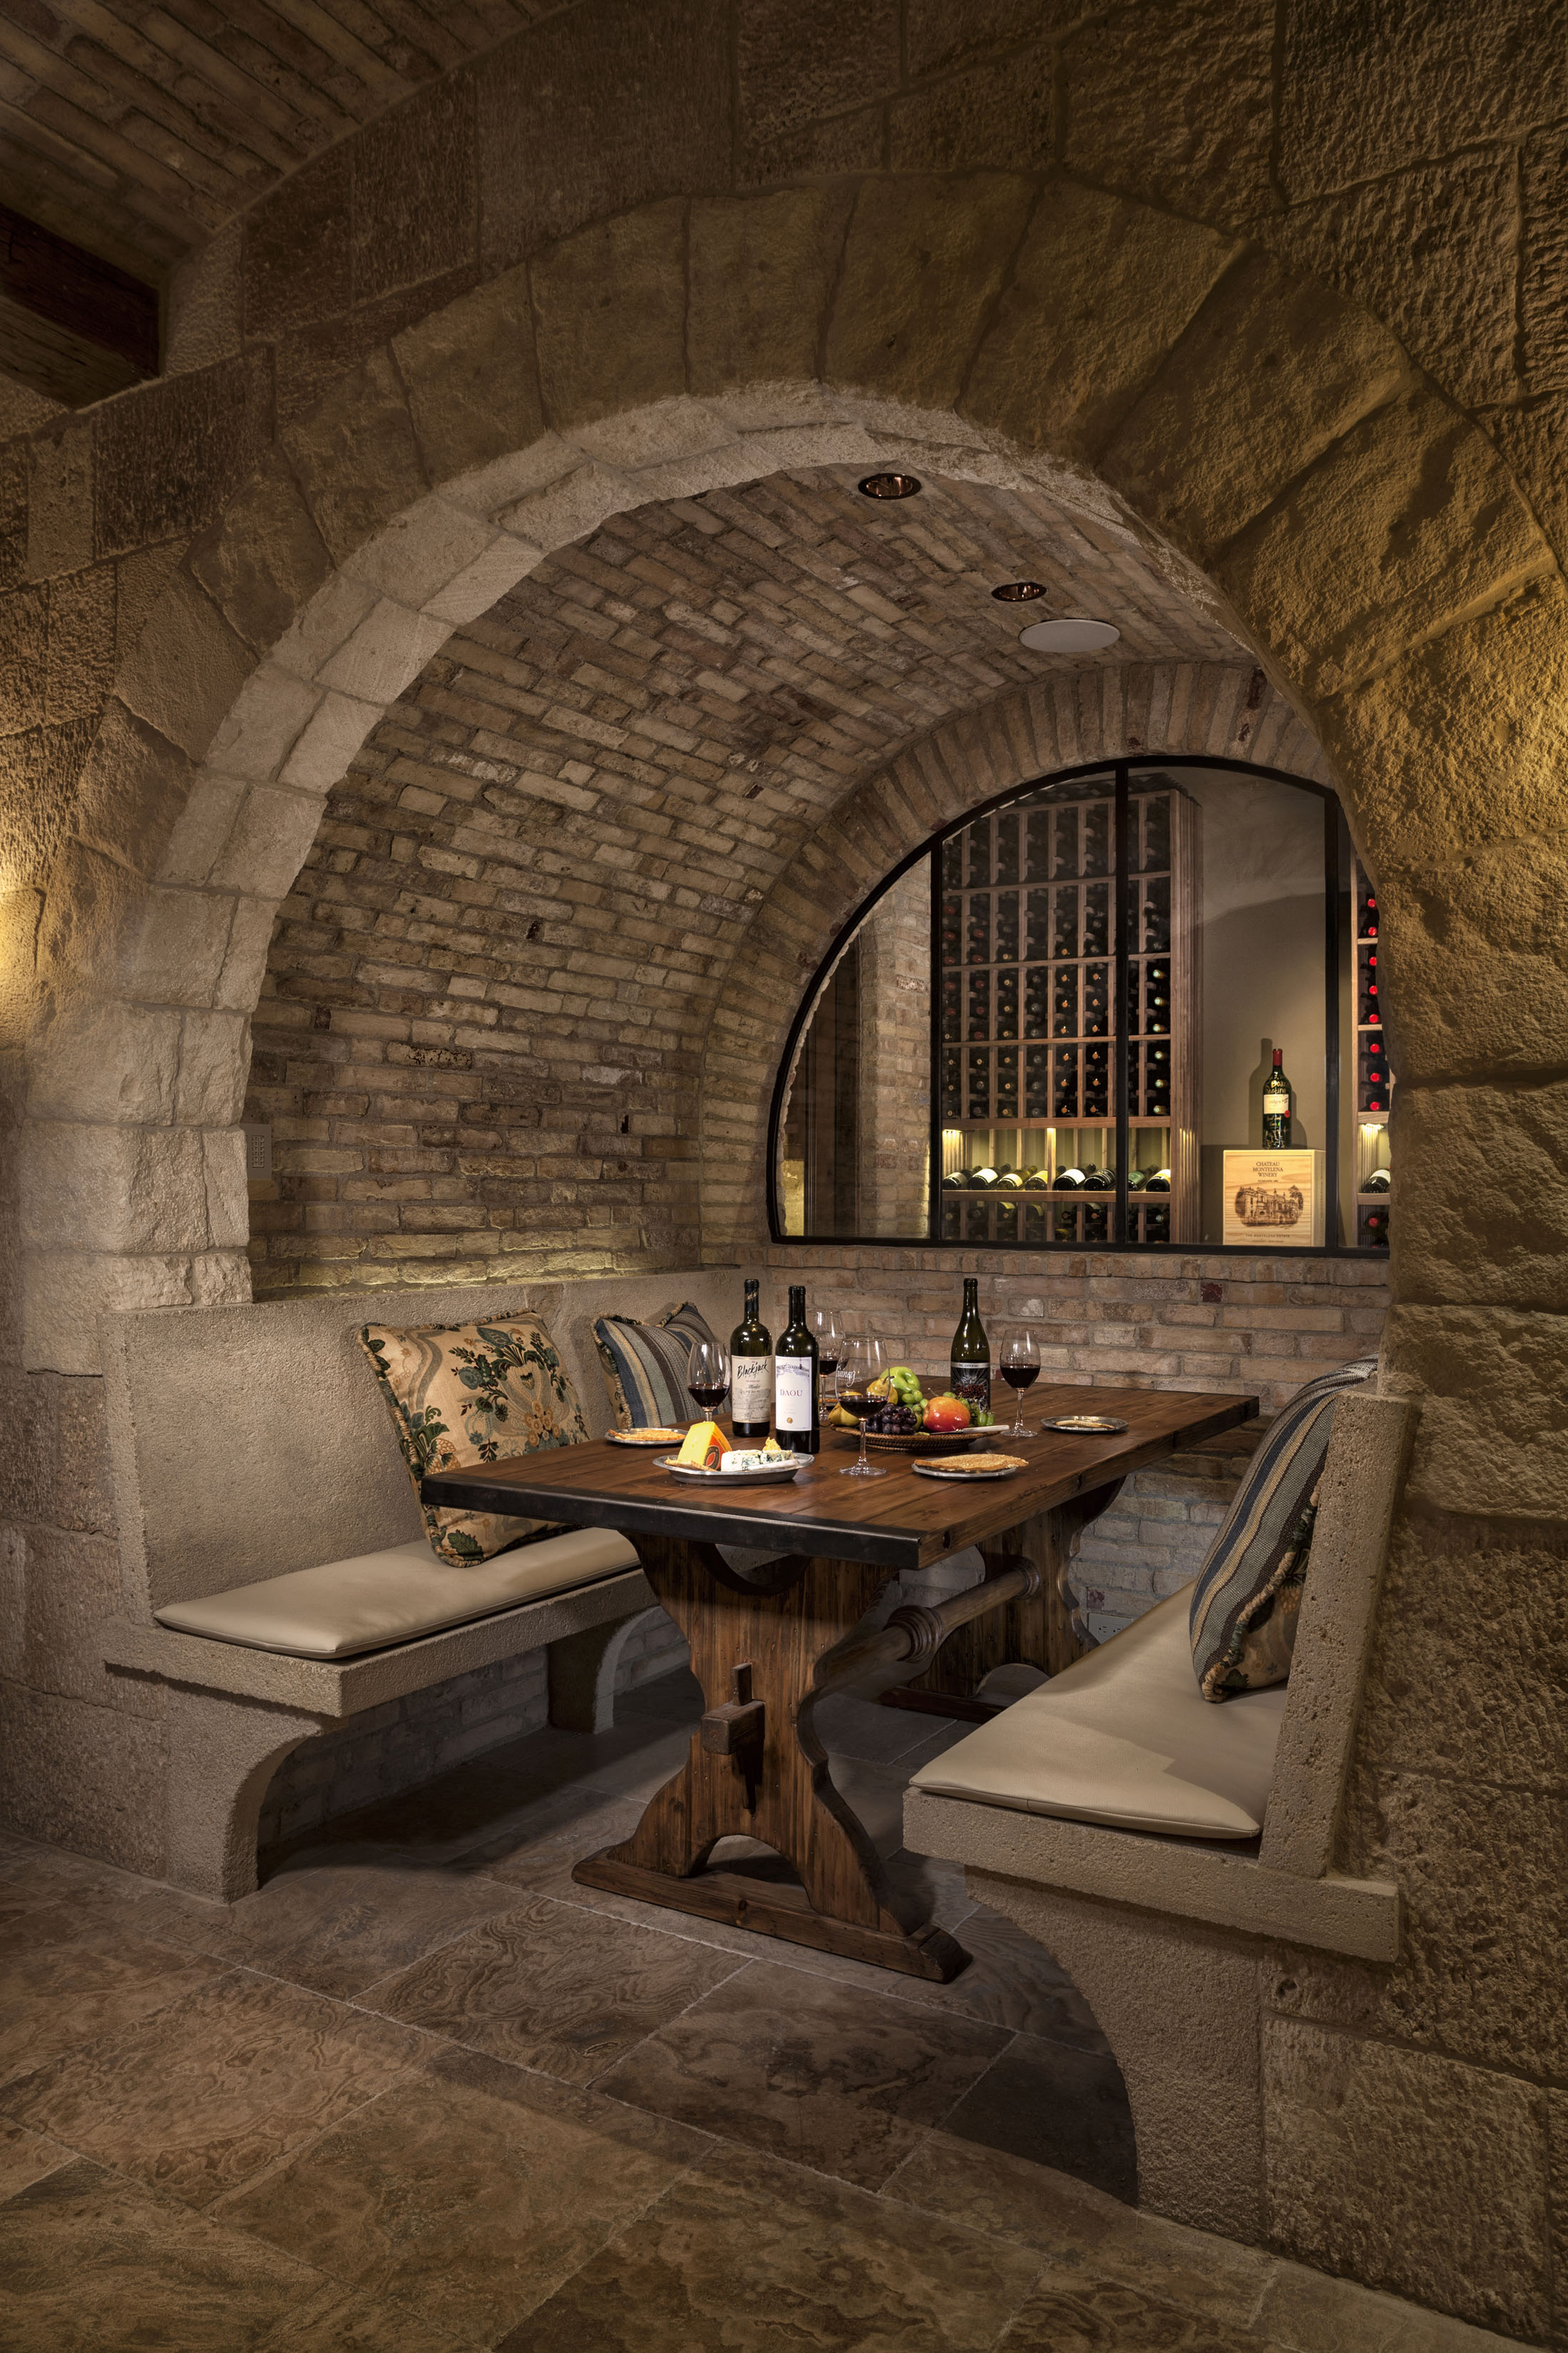 STrand Beach - ROMANesque WINE CELLAR by Oatman Architects